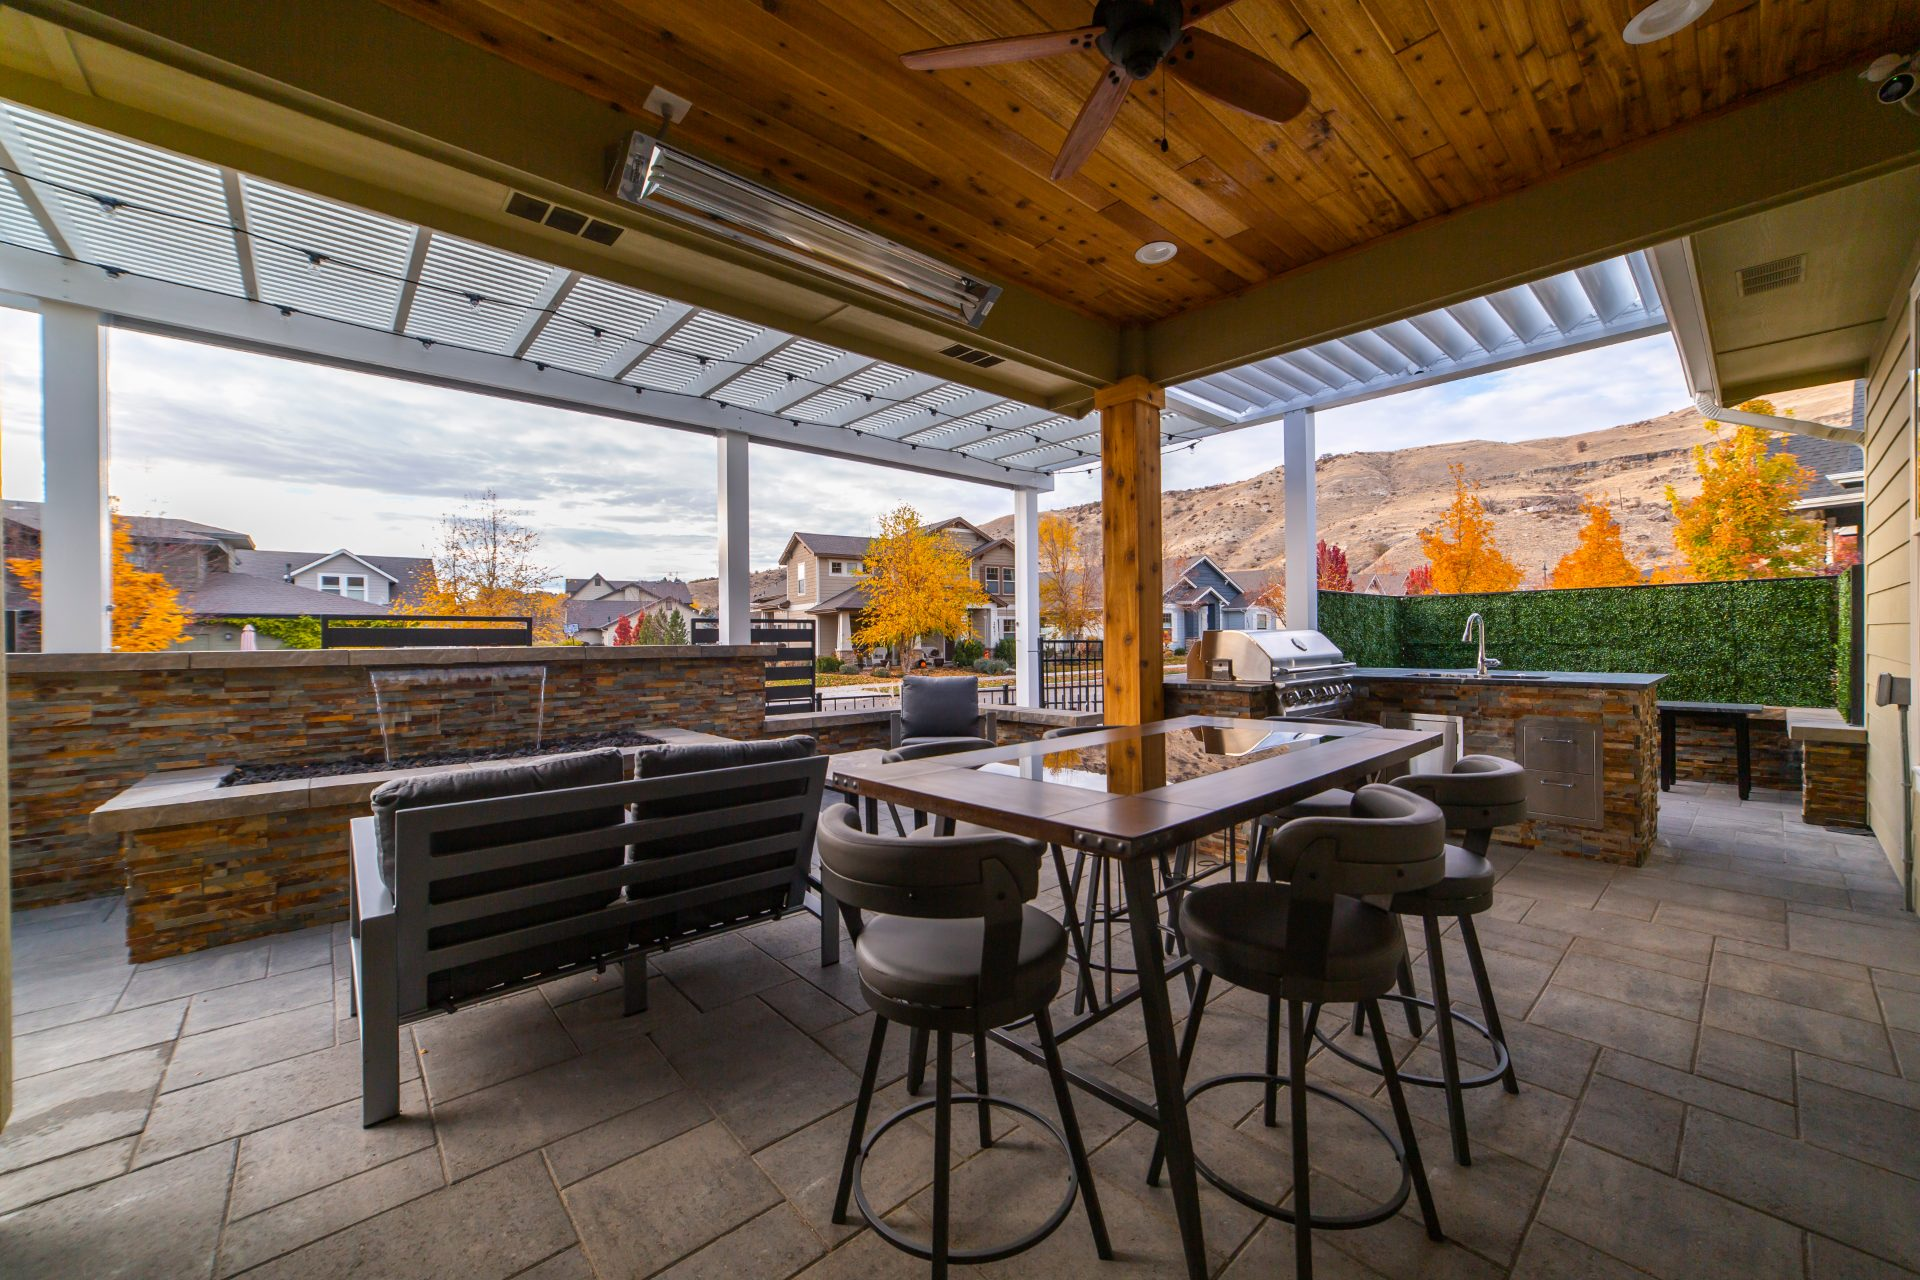 Outdoor Kitchens Outside Patio Kitchen Boise Remodeling